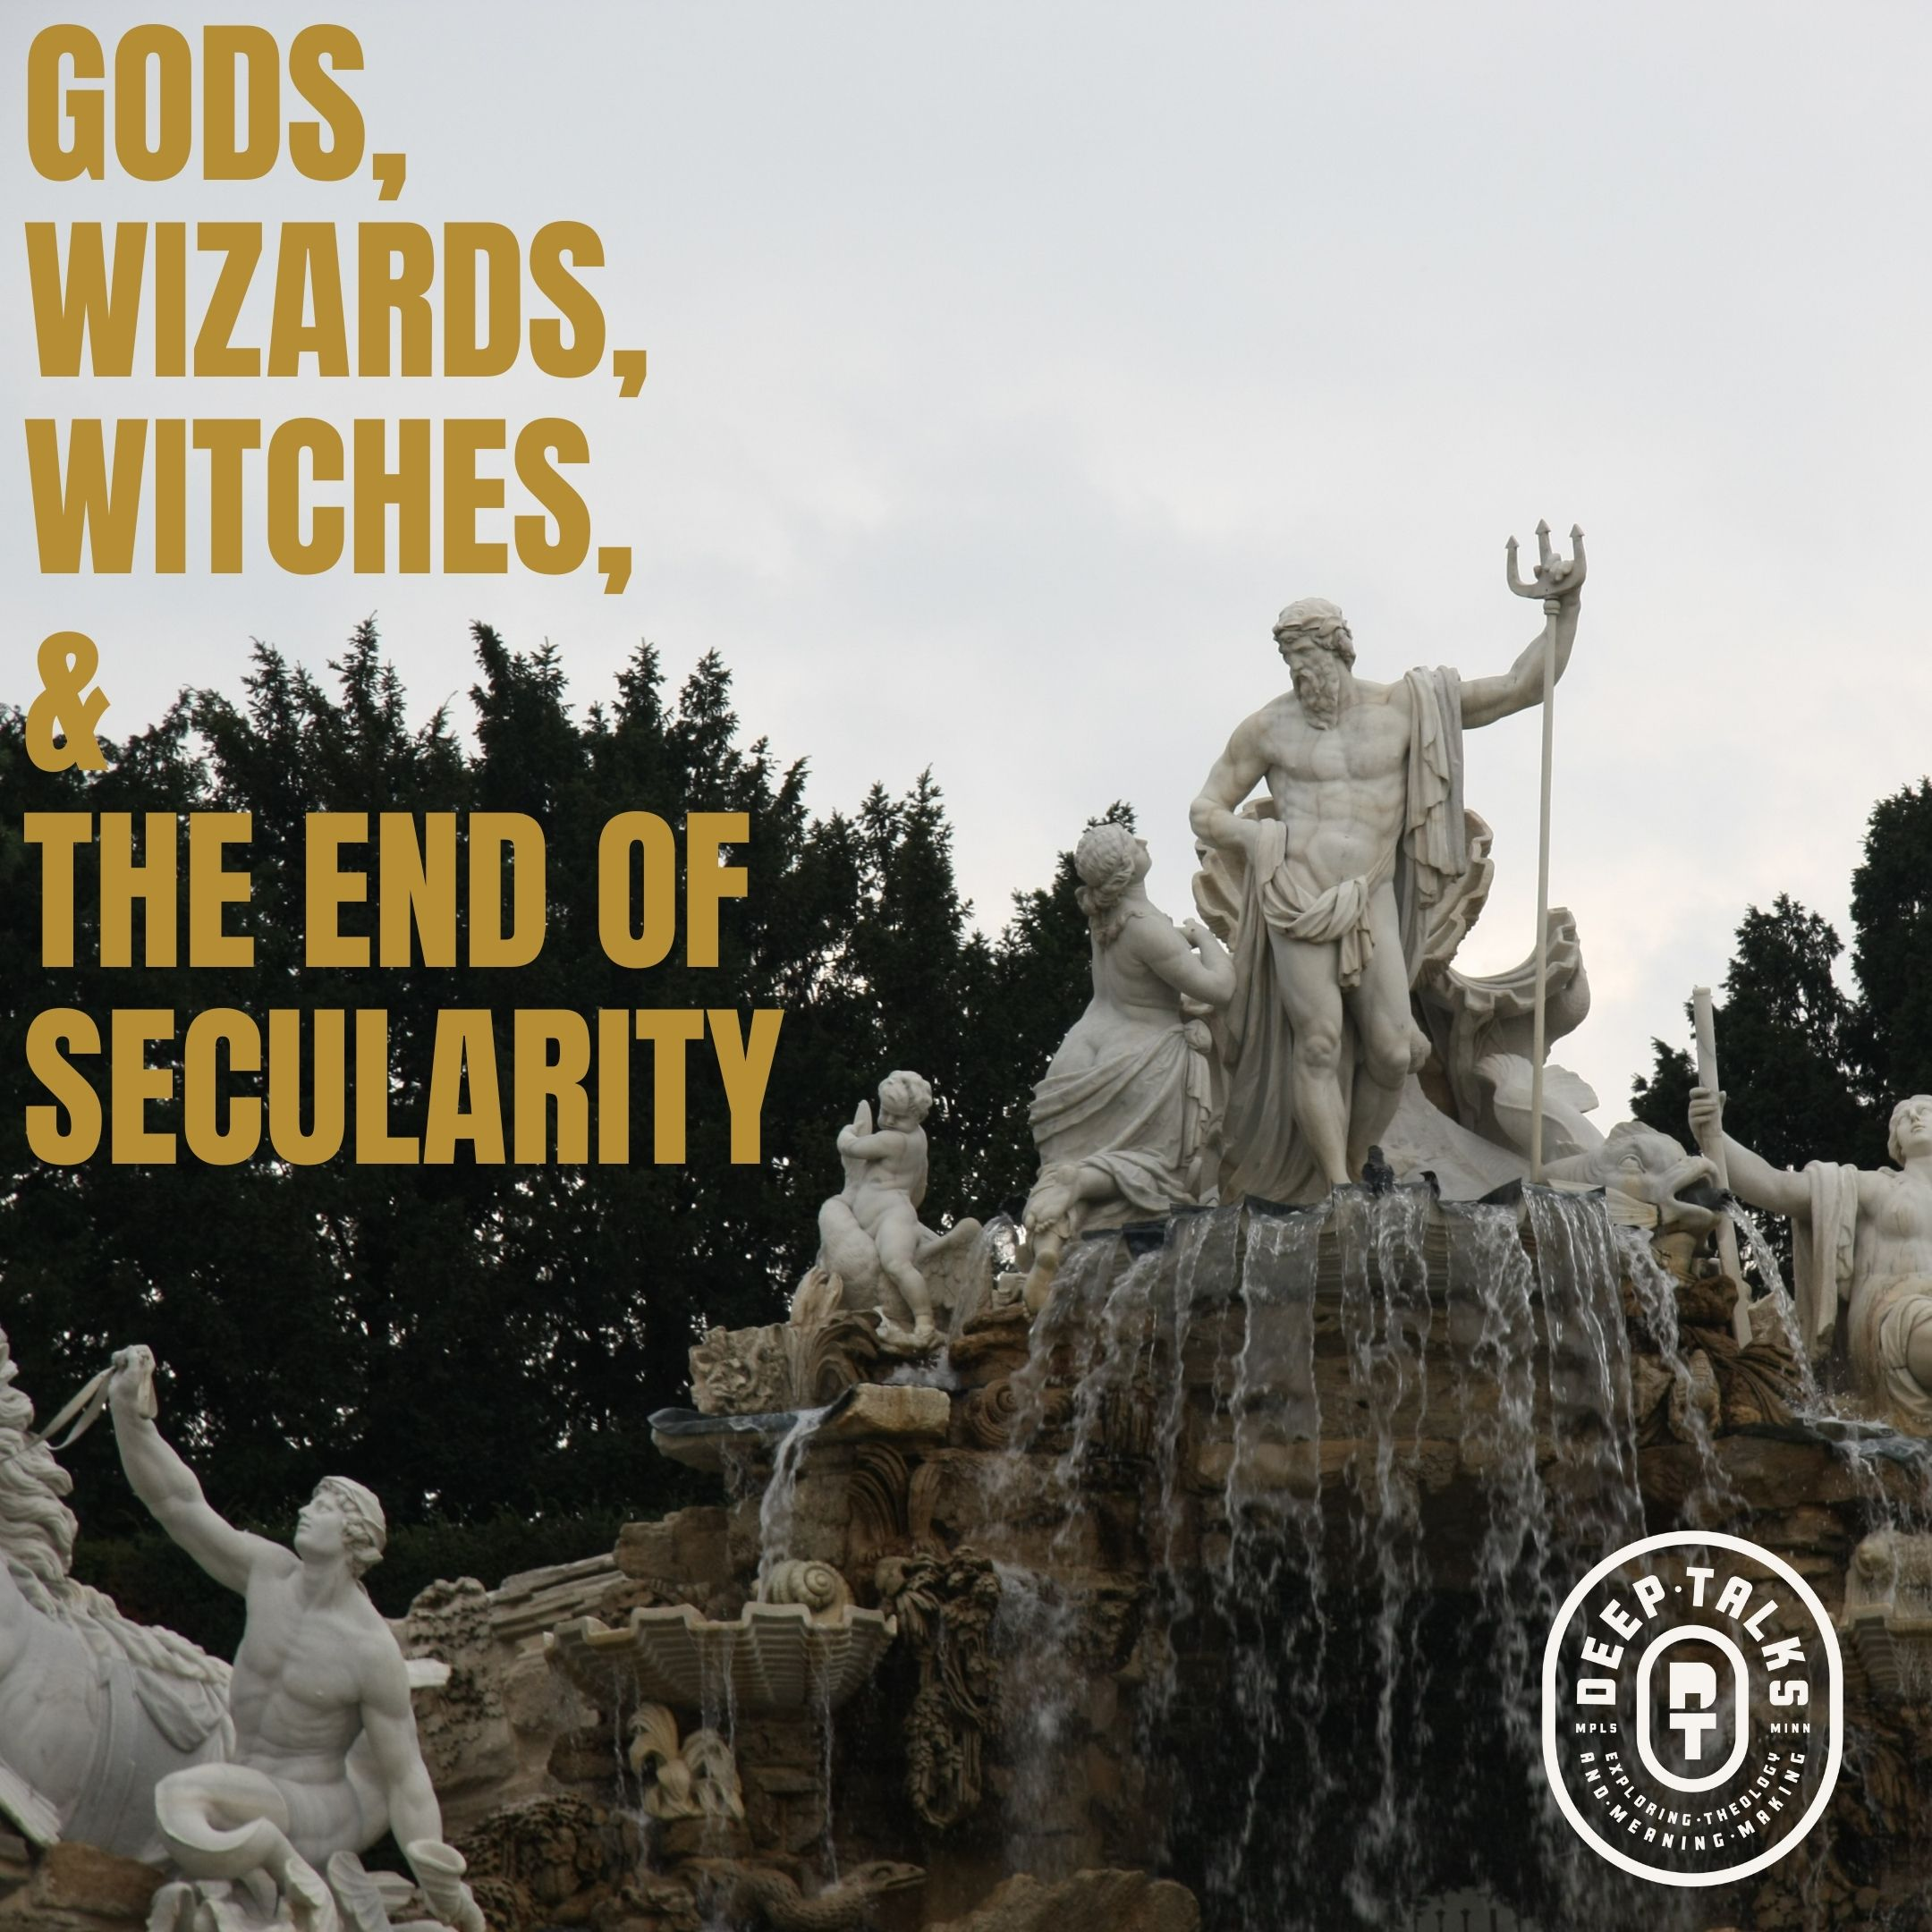 Ep 96: Gods, Wizards, Witches, & the End of Secularity (part 1)